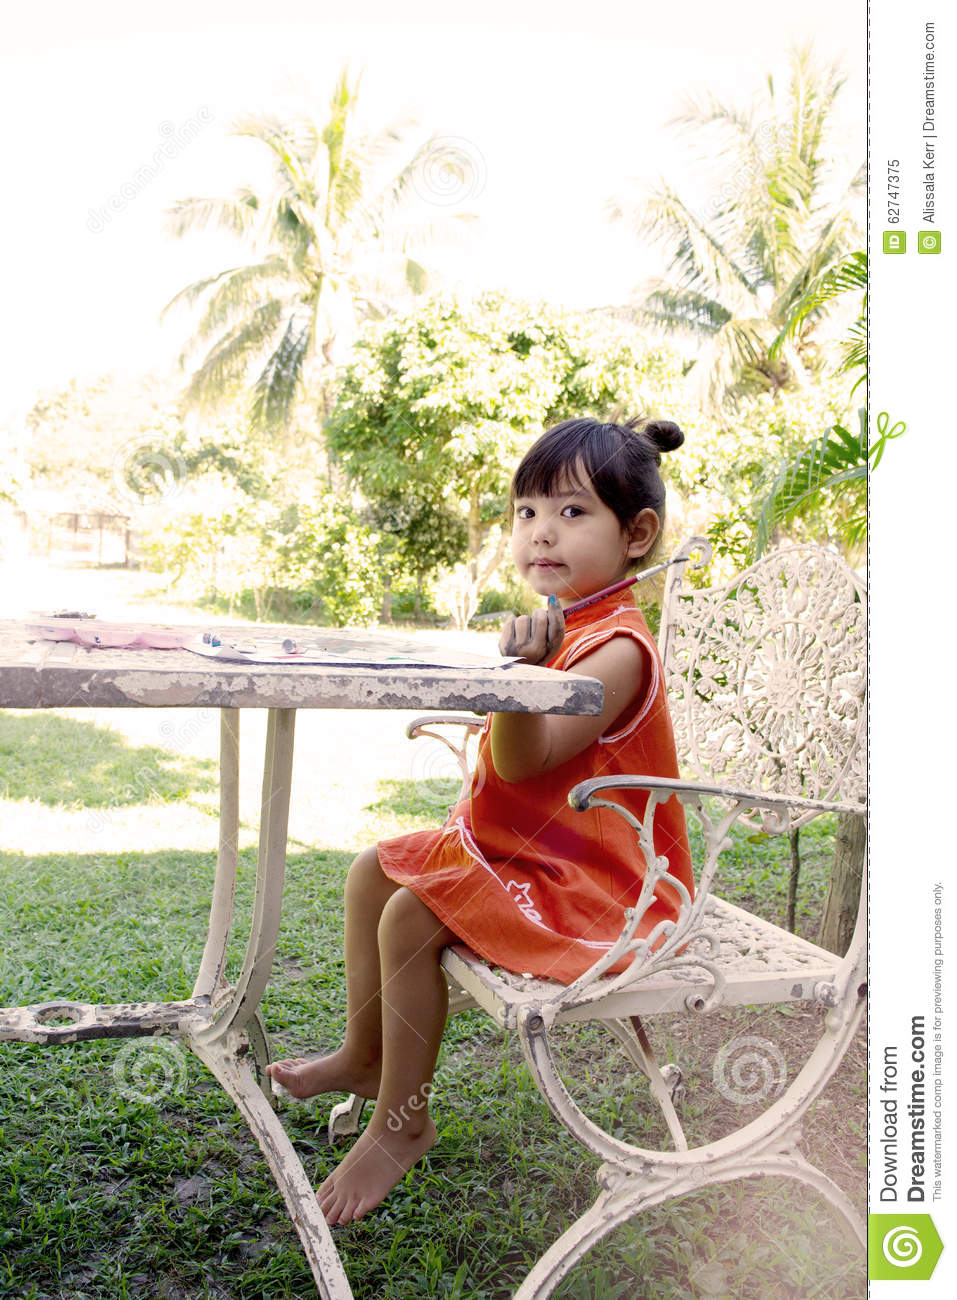 A little girl painting water colors on a table at home garden